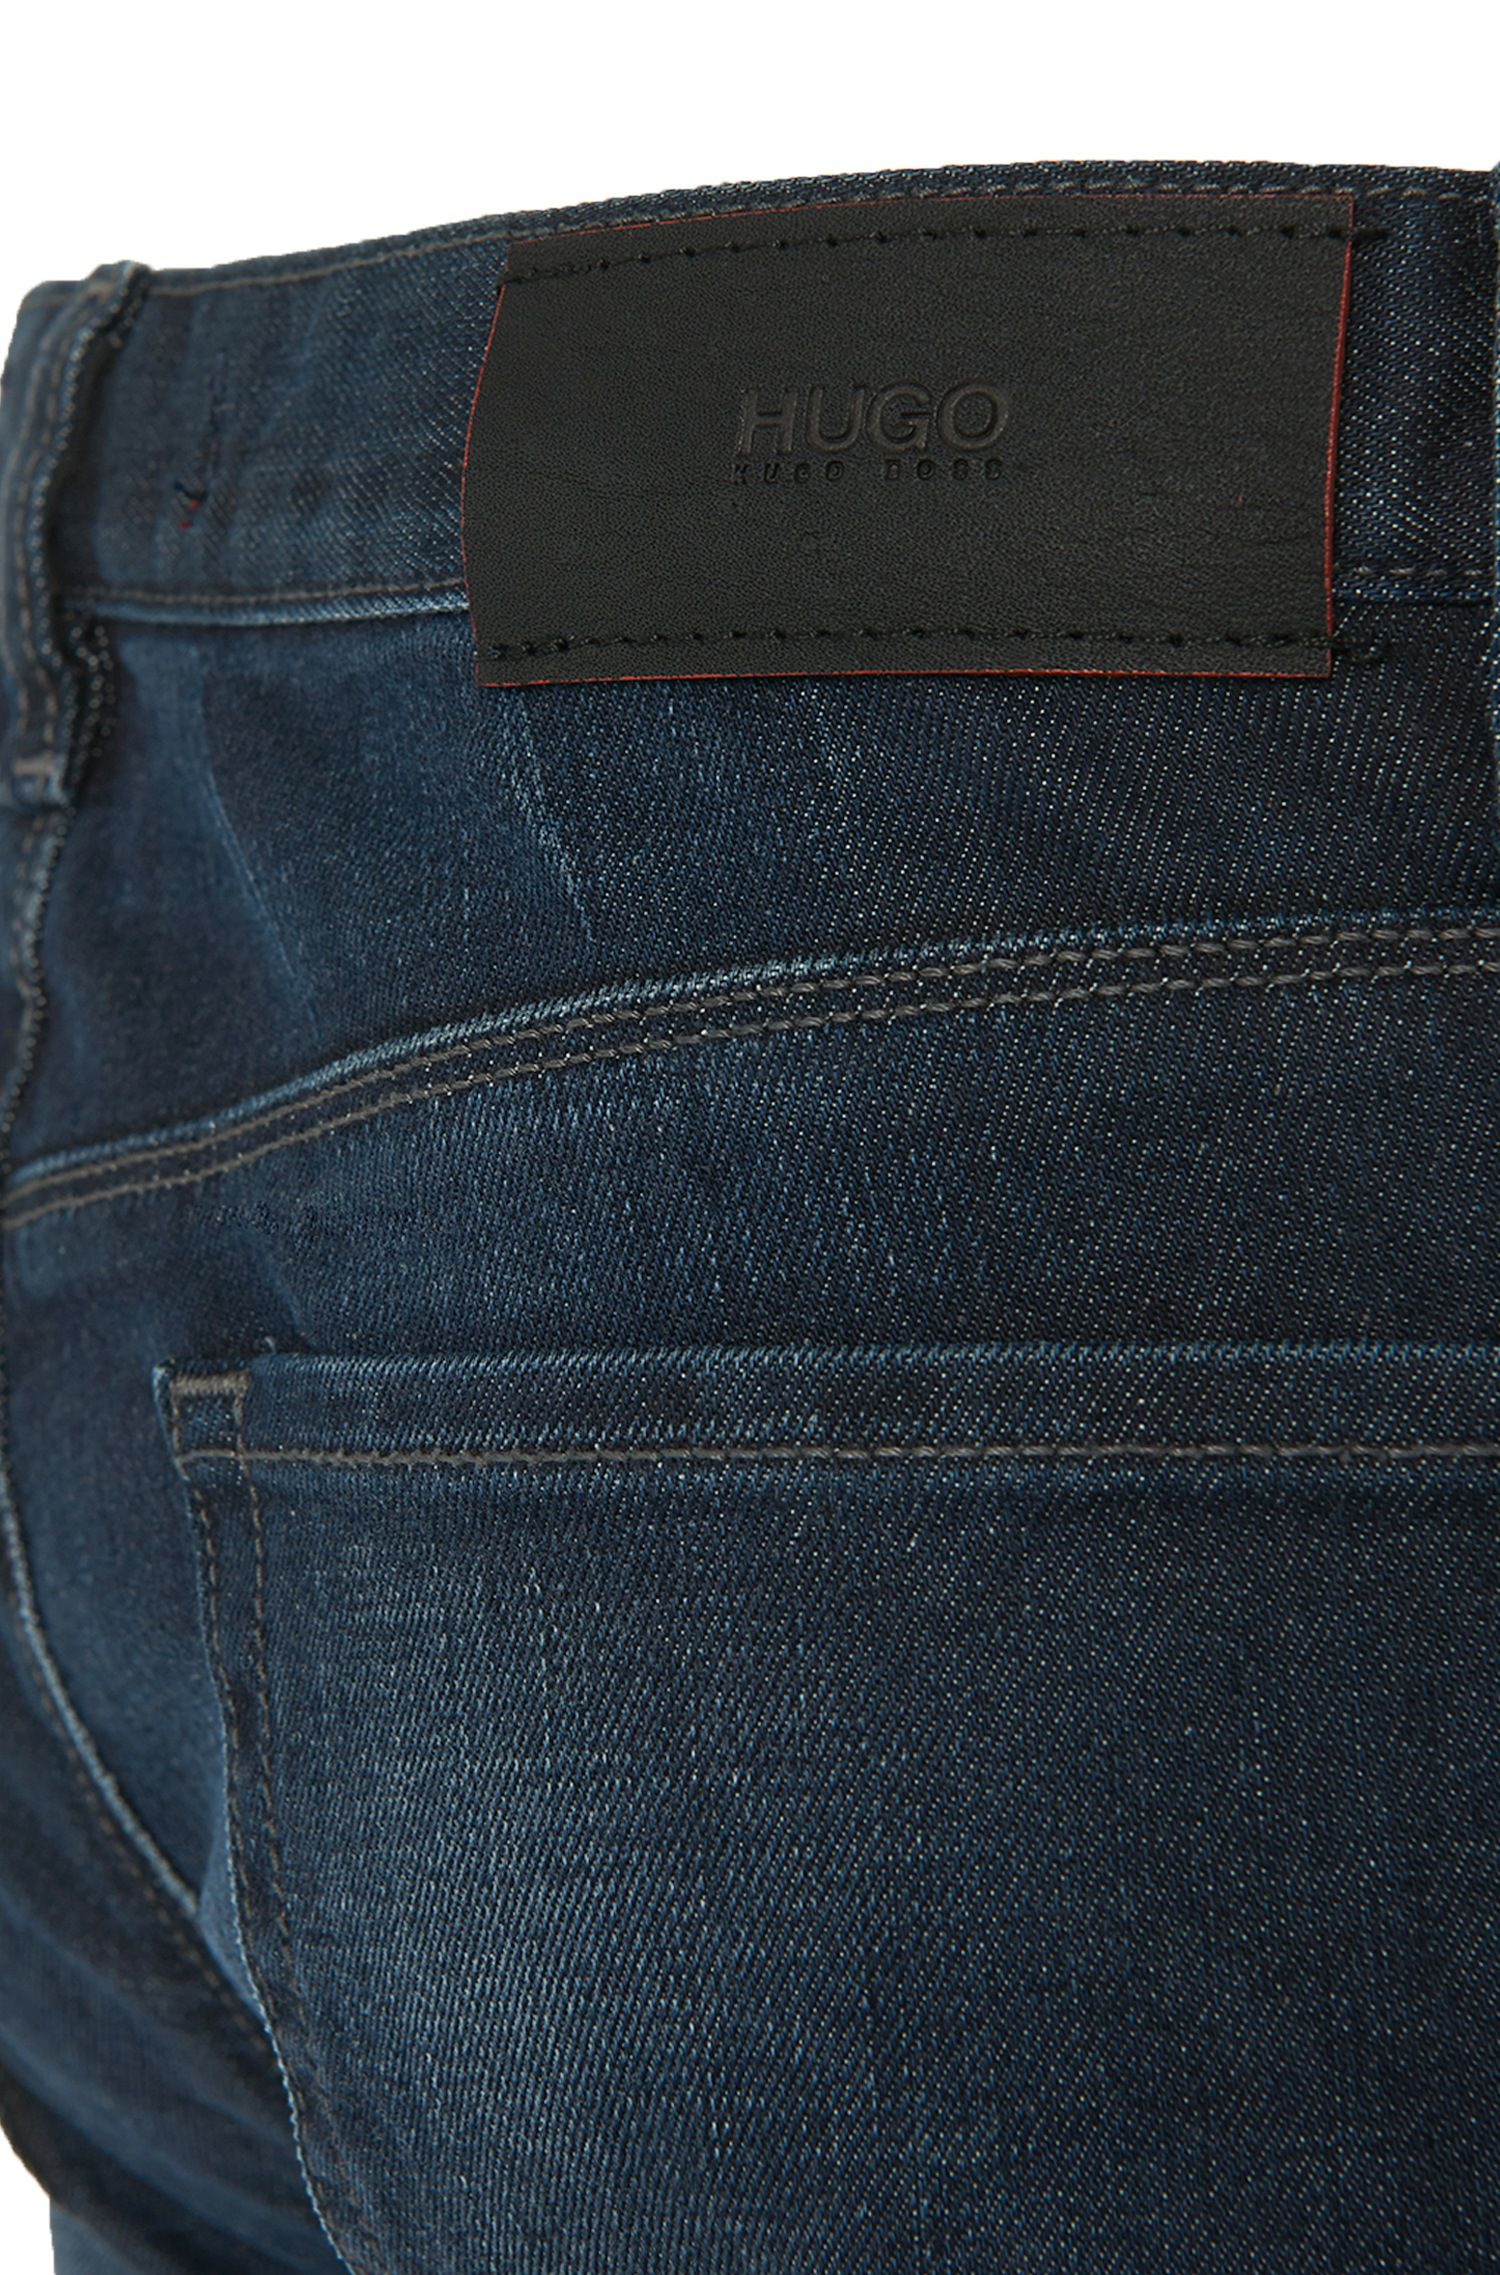 Jeans HUGO Homme Slim Fit en denim stretch Stone Wash, Bleu foncé